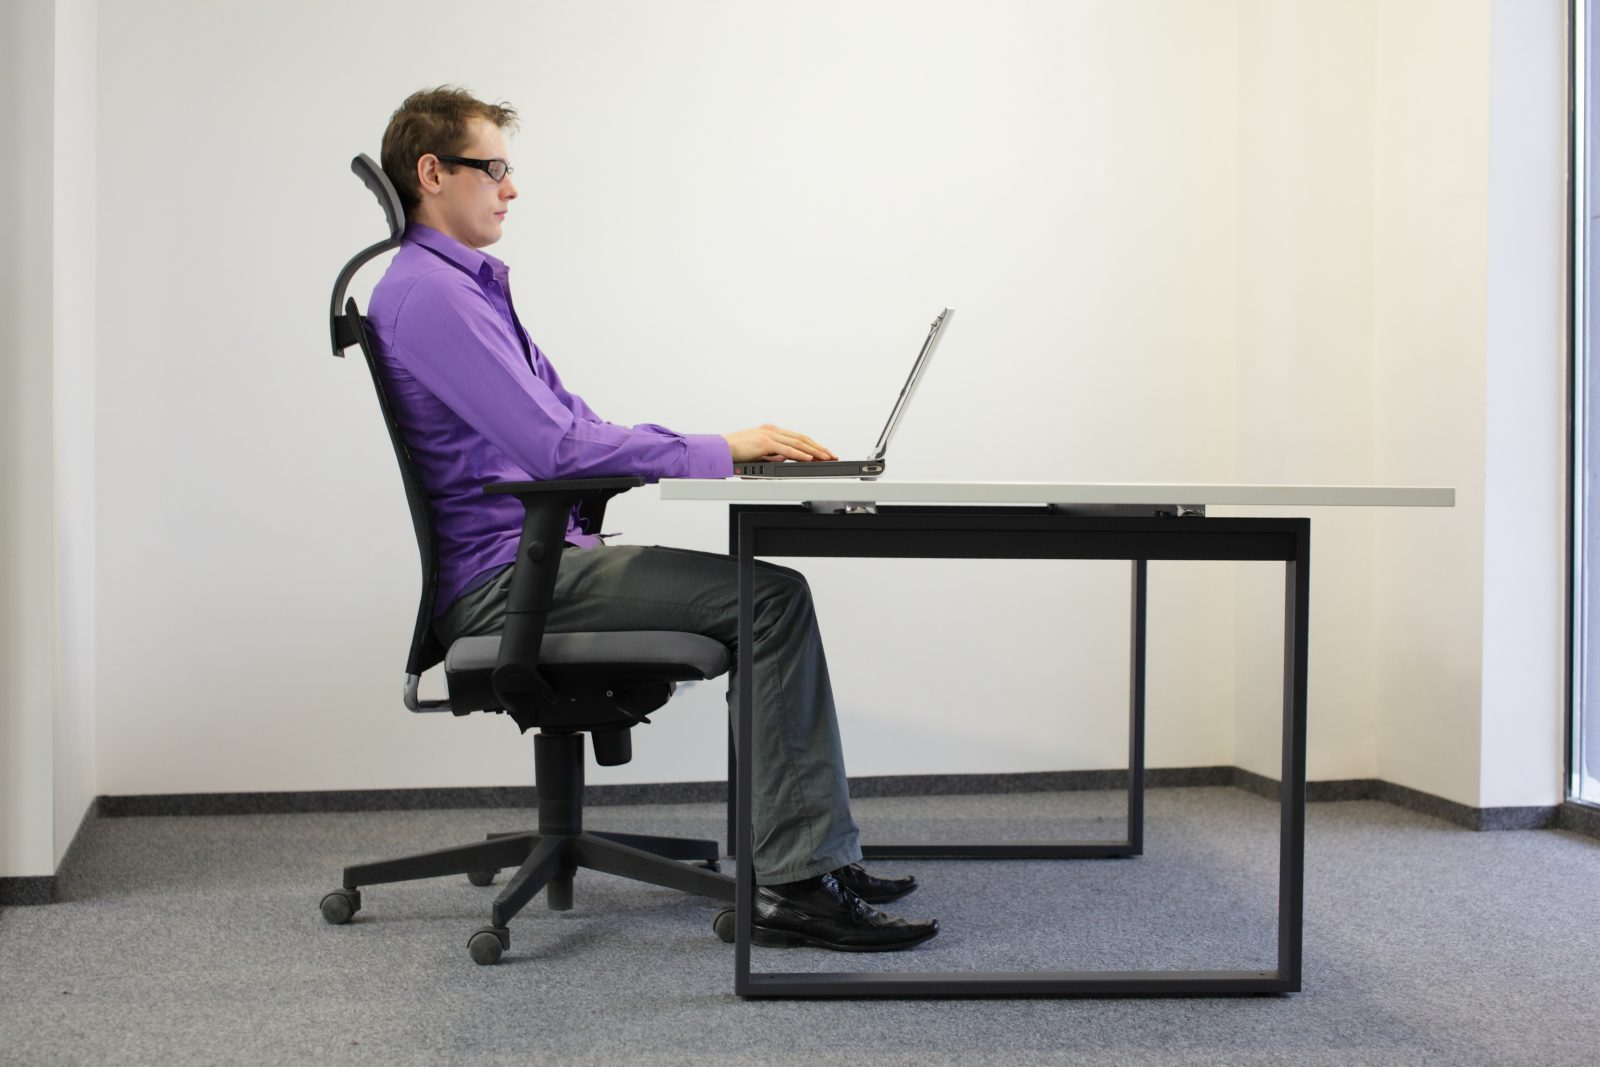 computer ergonomics in the work place Prolonged computer work also can cause physical stress that eventually could lead to a disability here's the good news: you can reduce computer-related discomfort by becoming more aware of your body ergonomics is the science of designing a job, equipment and/or workplace to fit the worker.